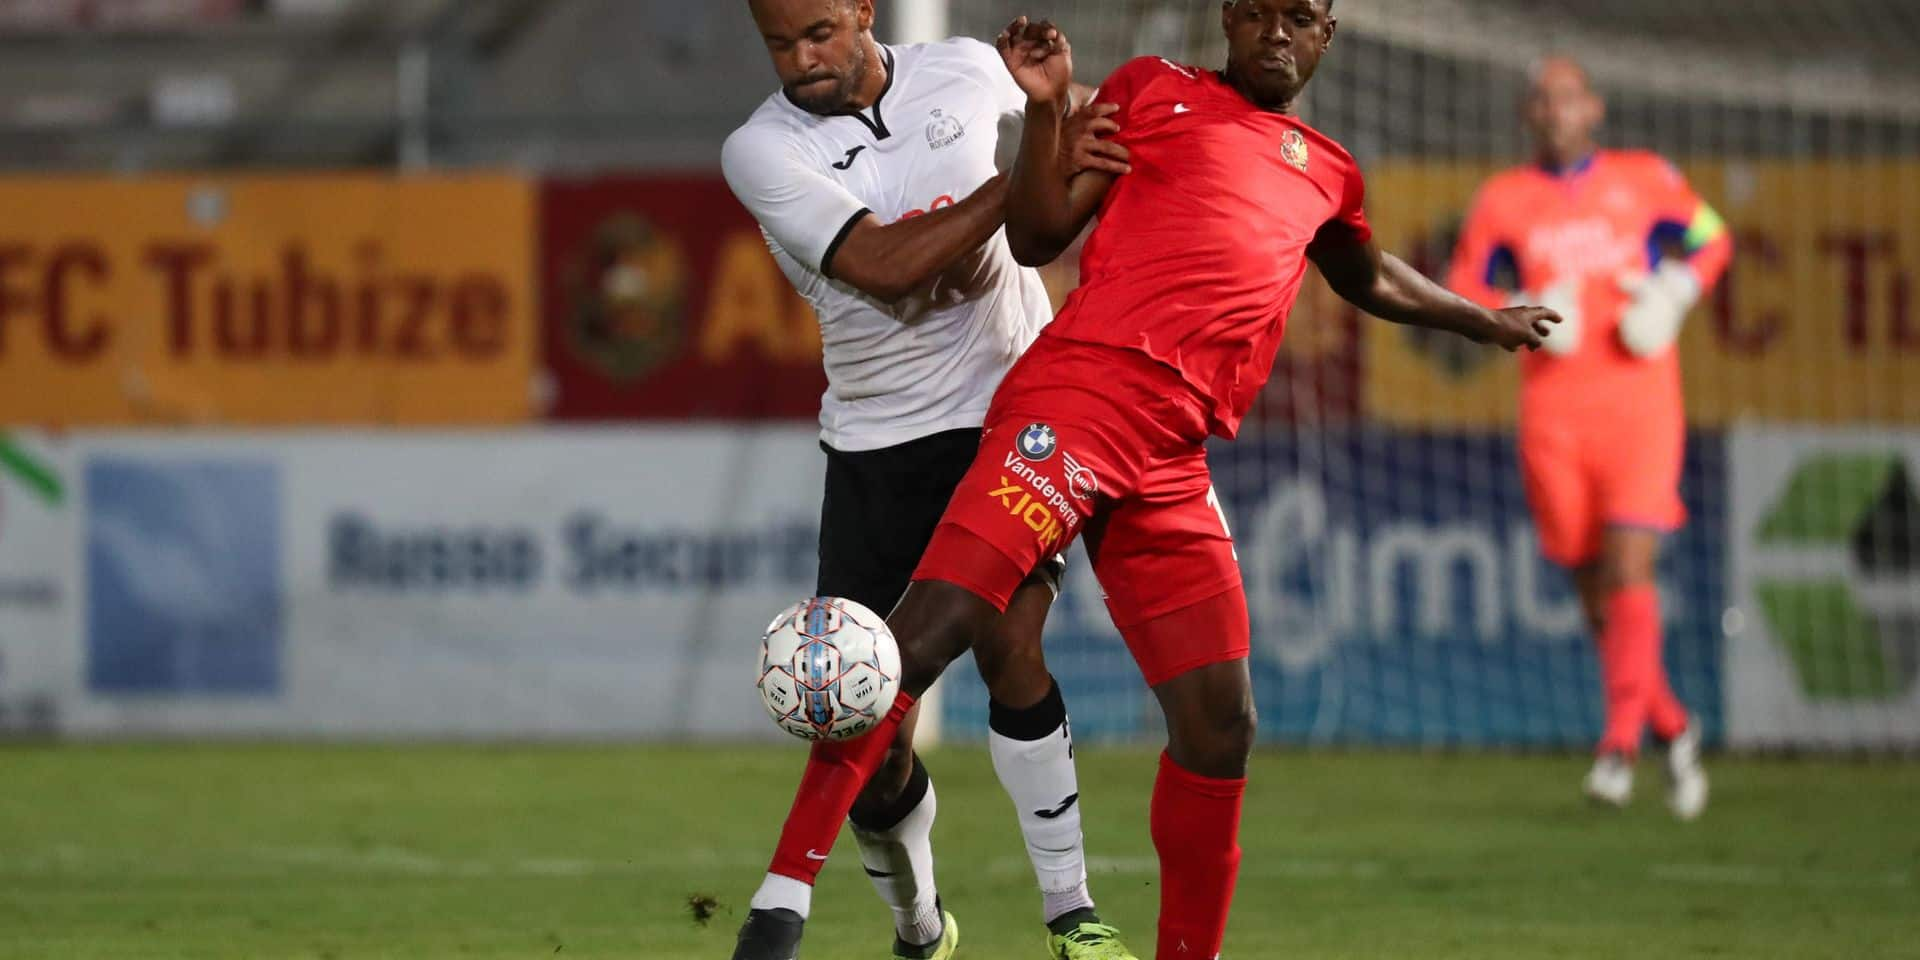 Roeselare's Francois Kompany and Tubize's Banou Diawara fight for the ball during a soccer game between Tubize and KSV Roeselare, in Tubize, Saturday 18 August 2018, on the third day of the division 1B Proximus League competition of the Belgian soccer championship. BELGA PHOTO VIRGINIE LEFOUR